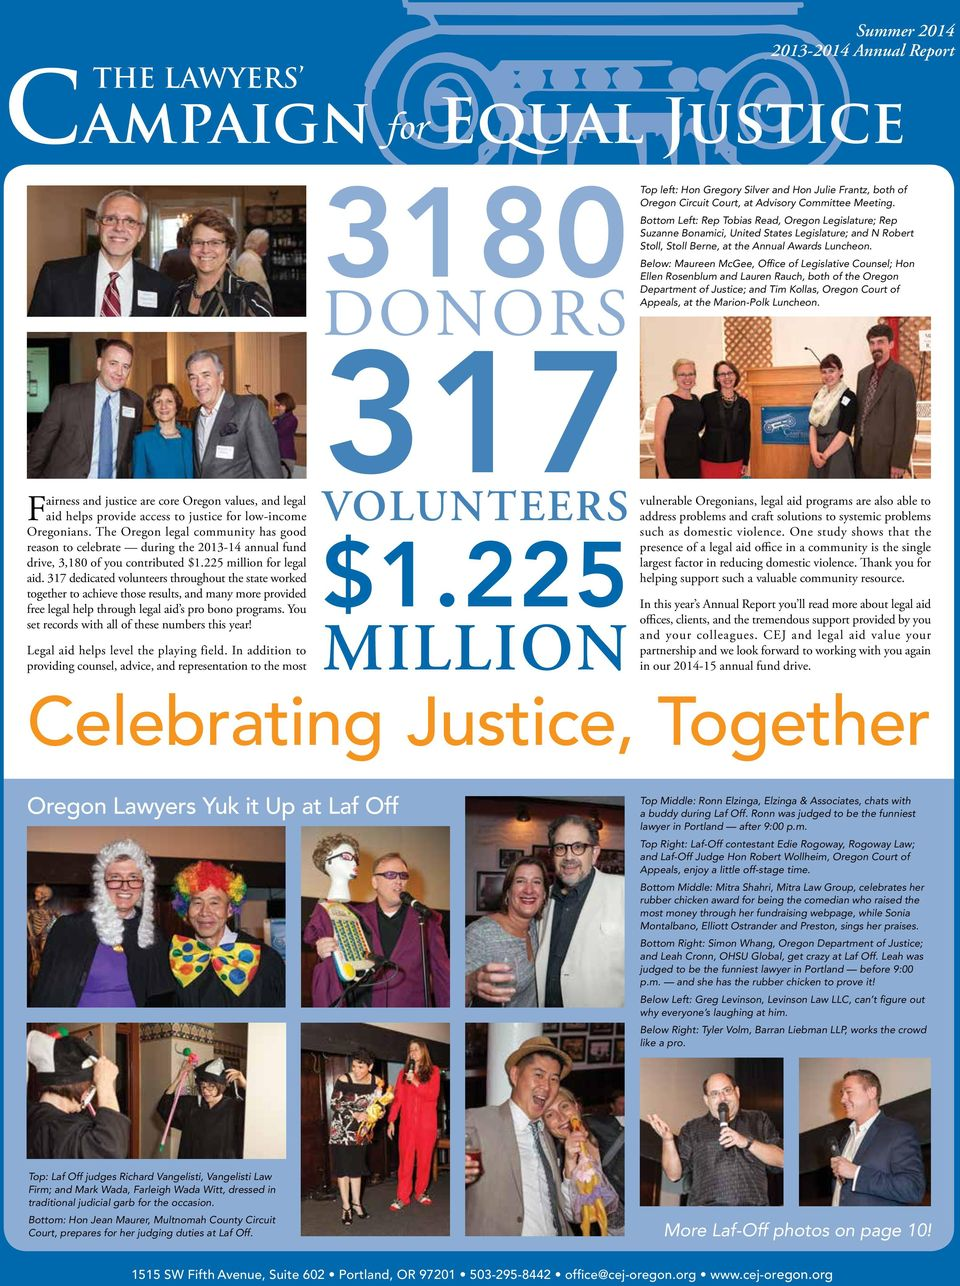 317 dedicated volunteers throughout the state worked together to achieve those results, and many more provided free legal help through legal aid s pro bono programs.